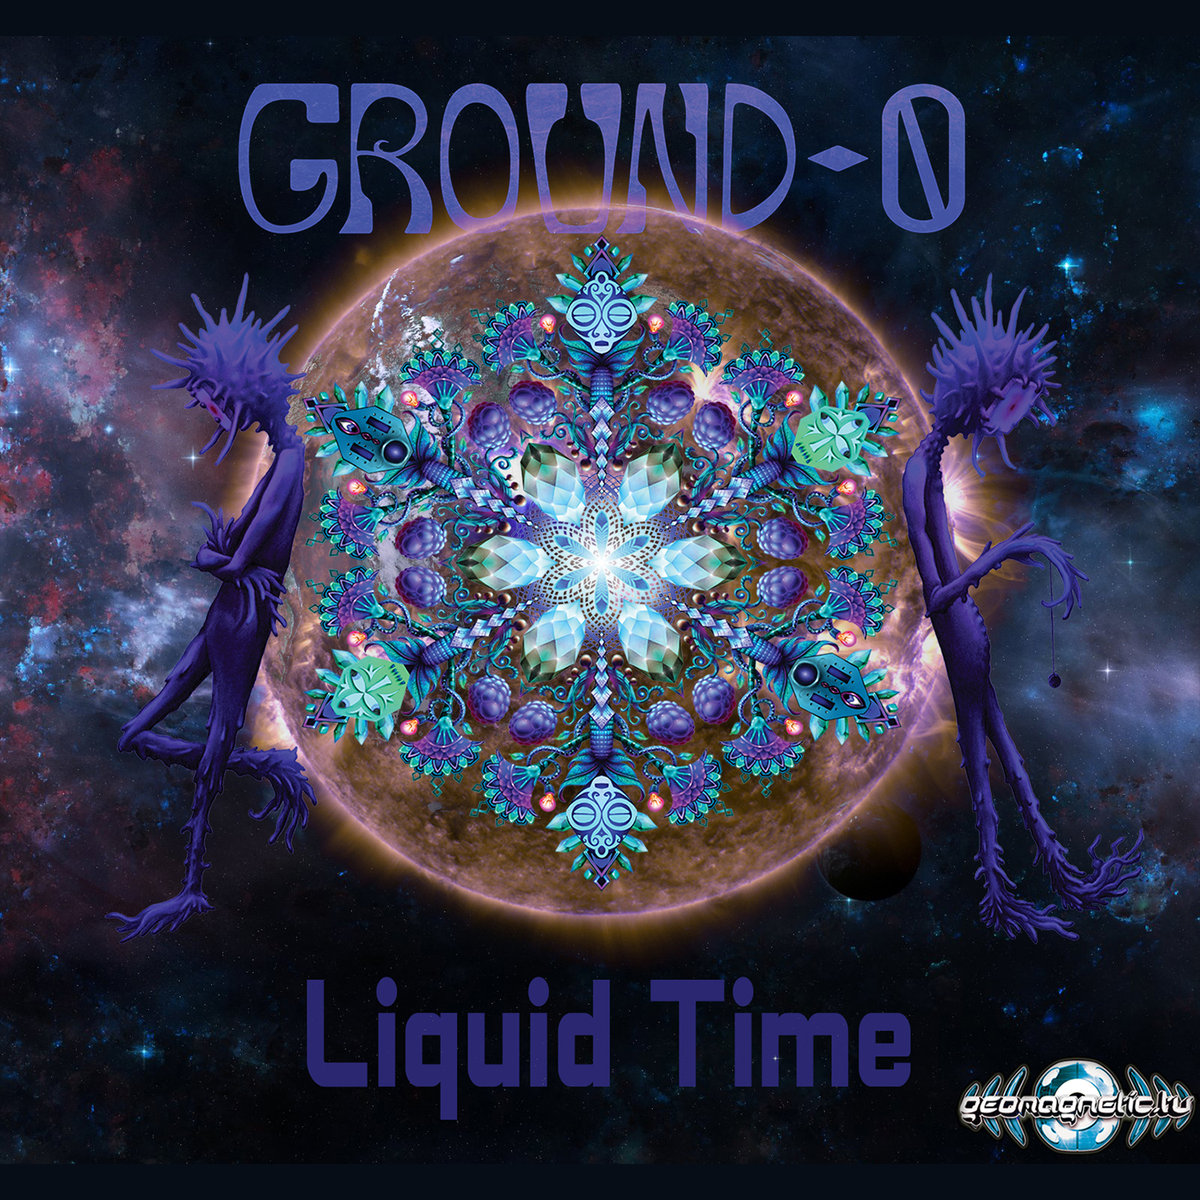 Ground 0 - Time Traveler @ 'Liquid Time' album (electronic, goa)